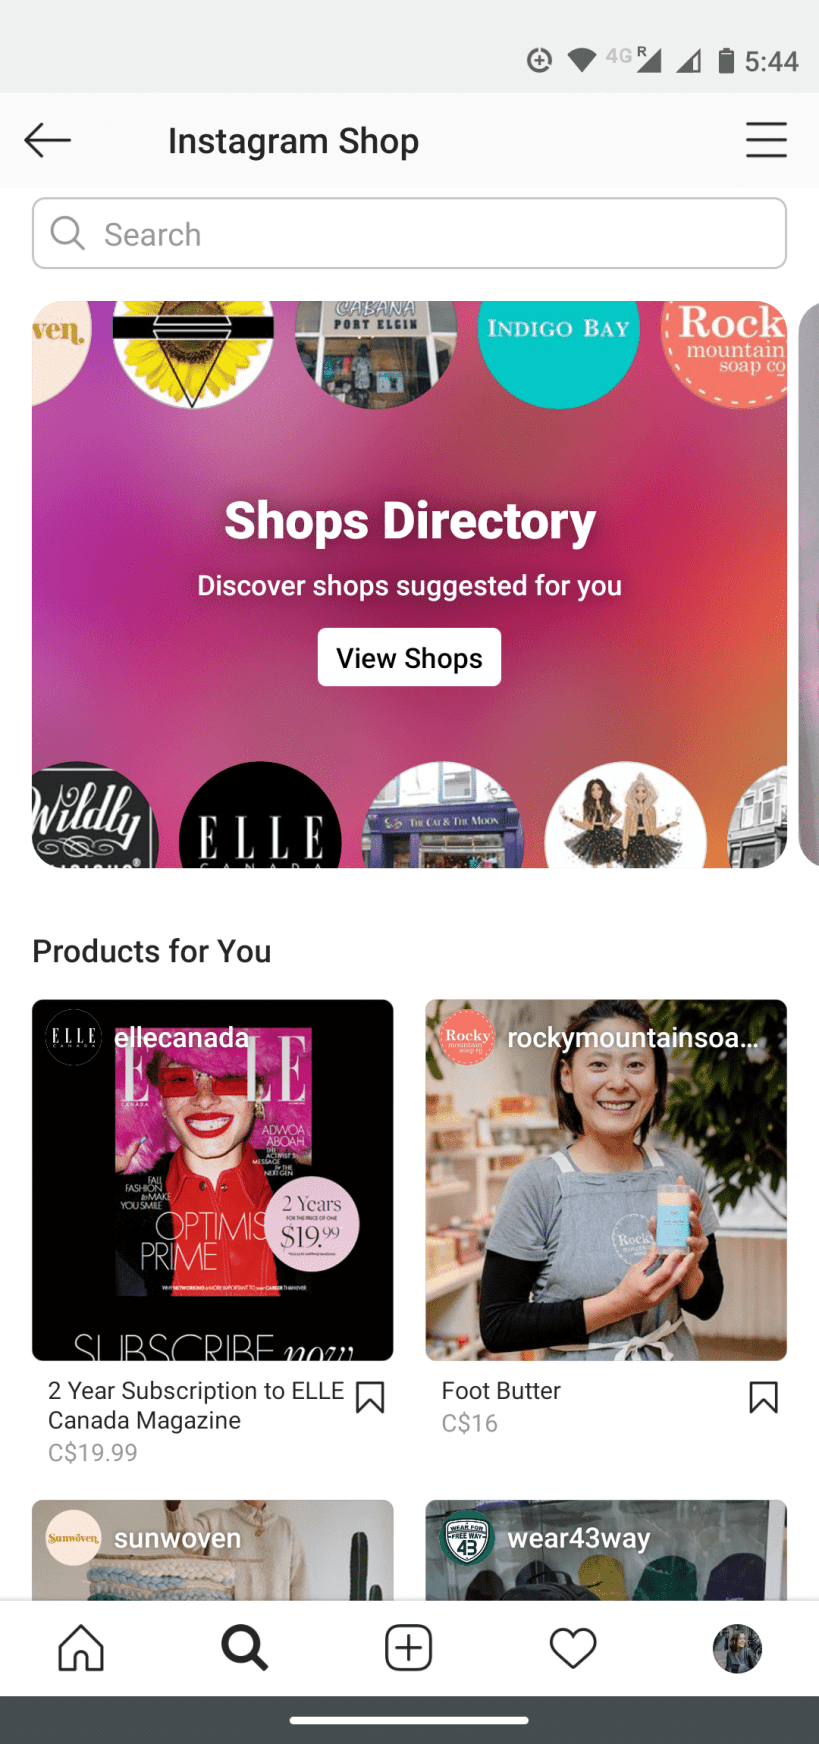 Shops Directory